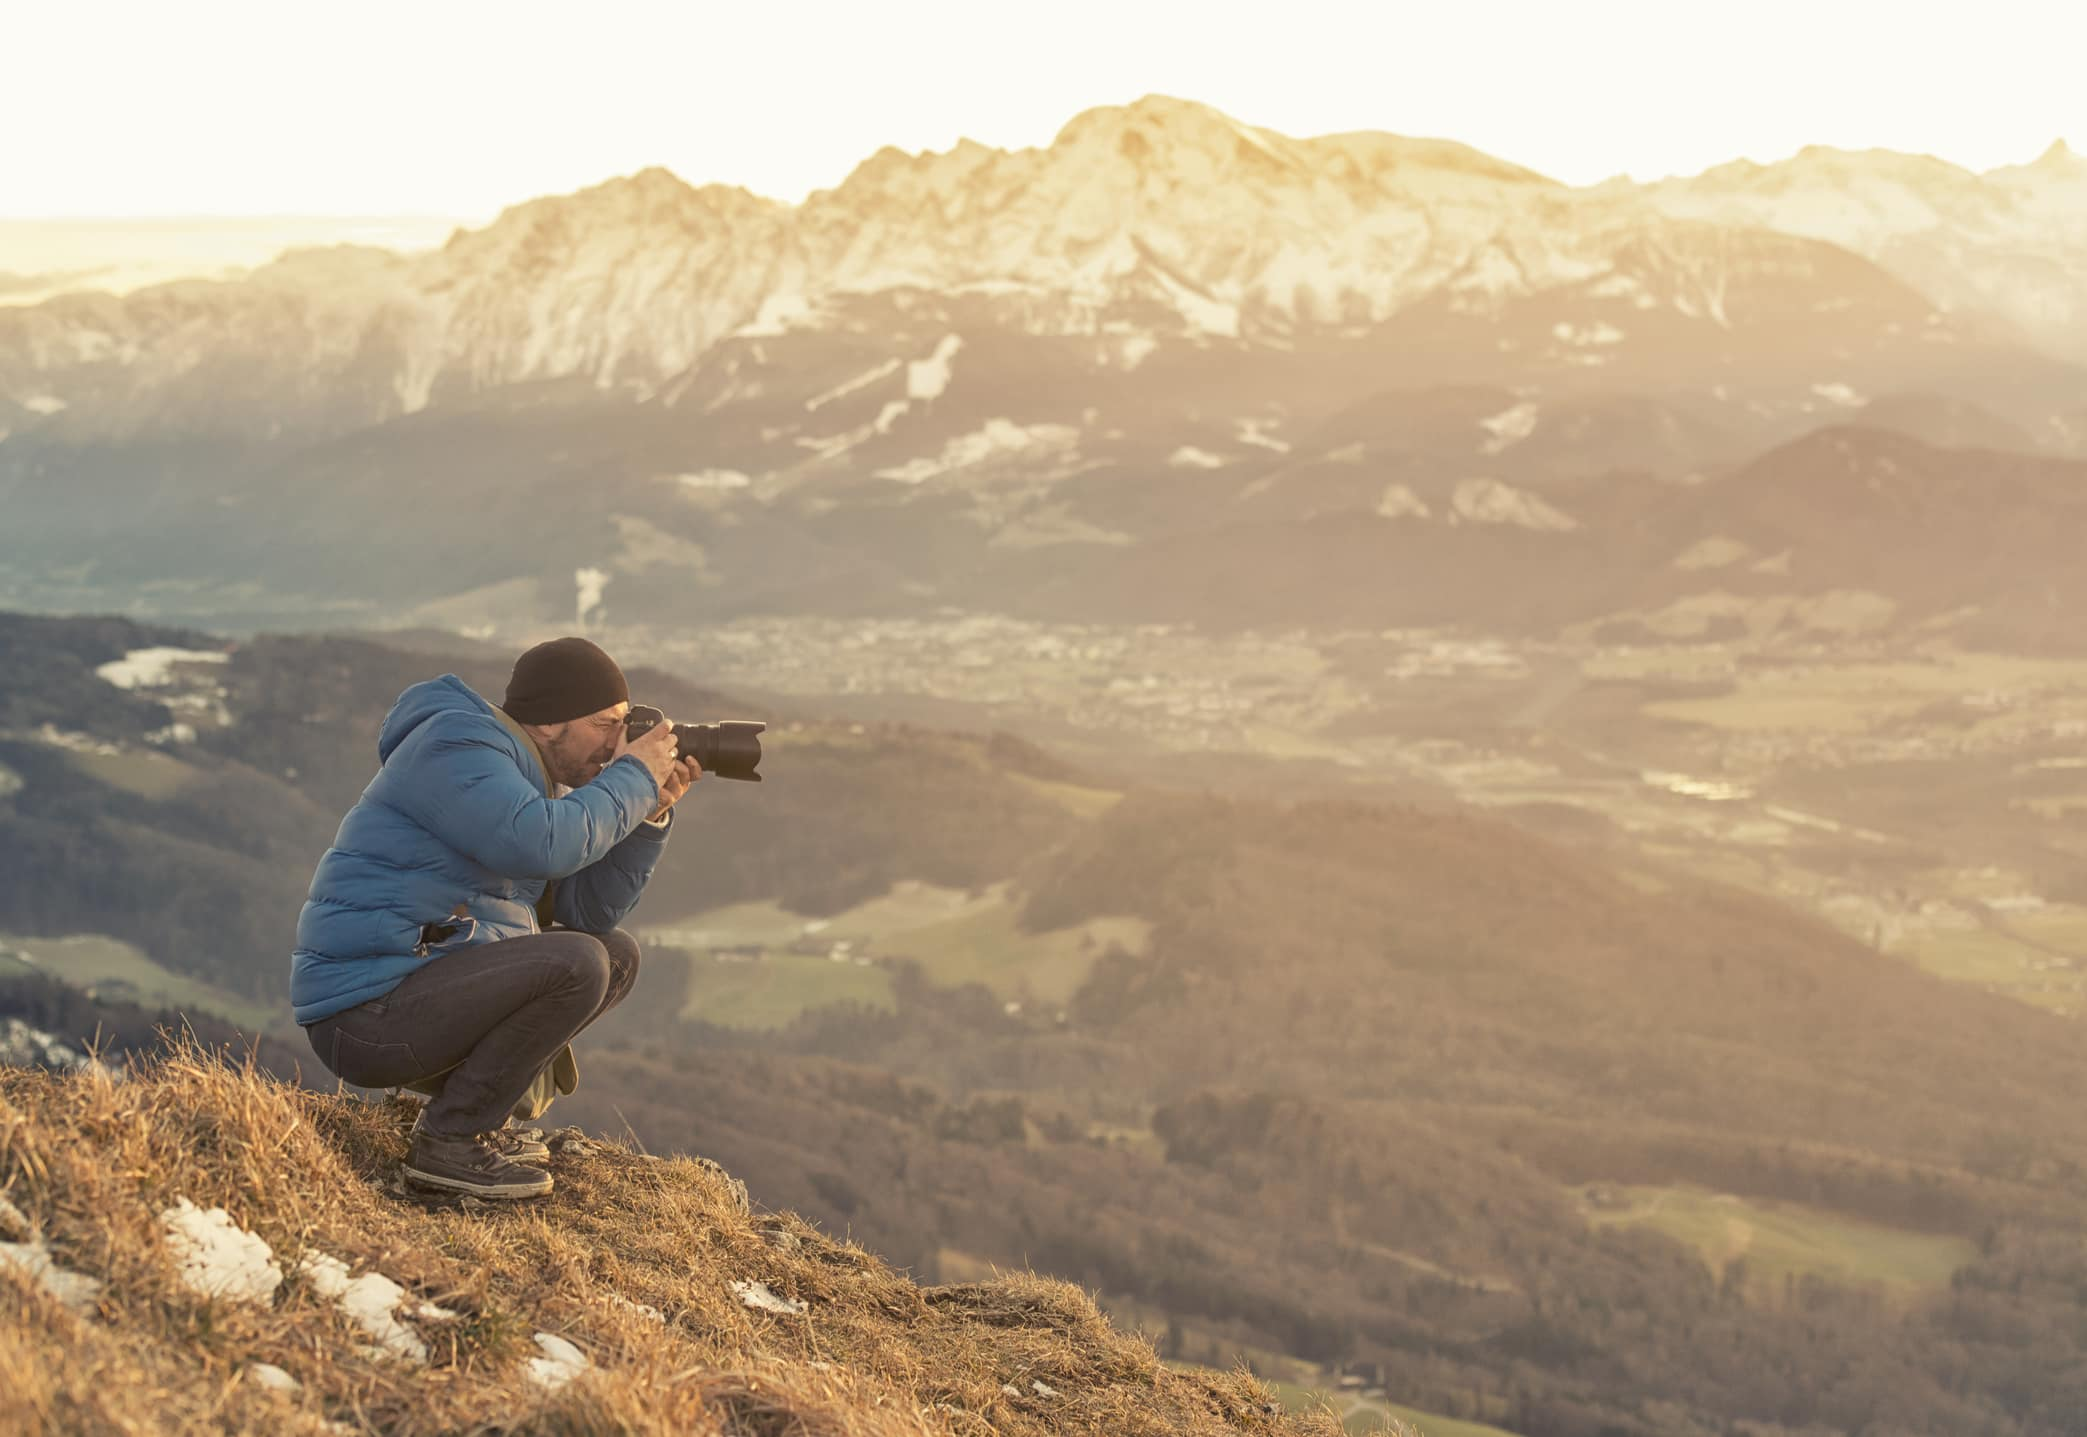 Become a Better Photographer Today in 9 Easy Steps